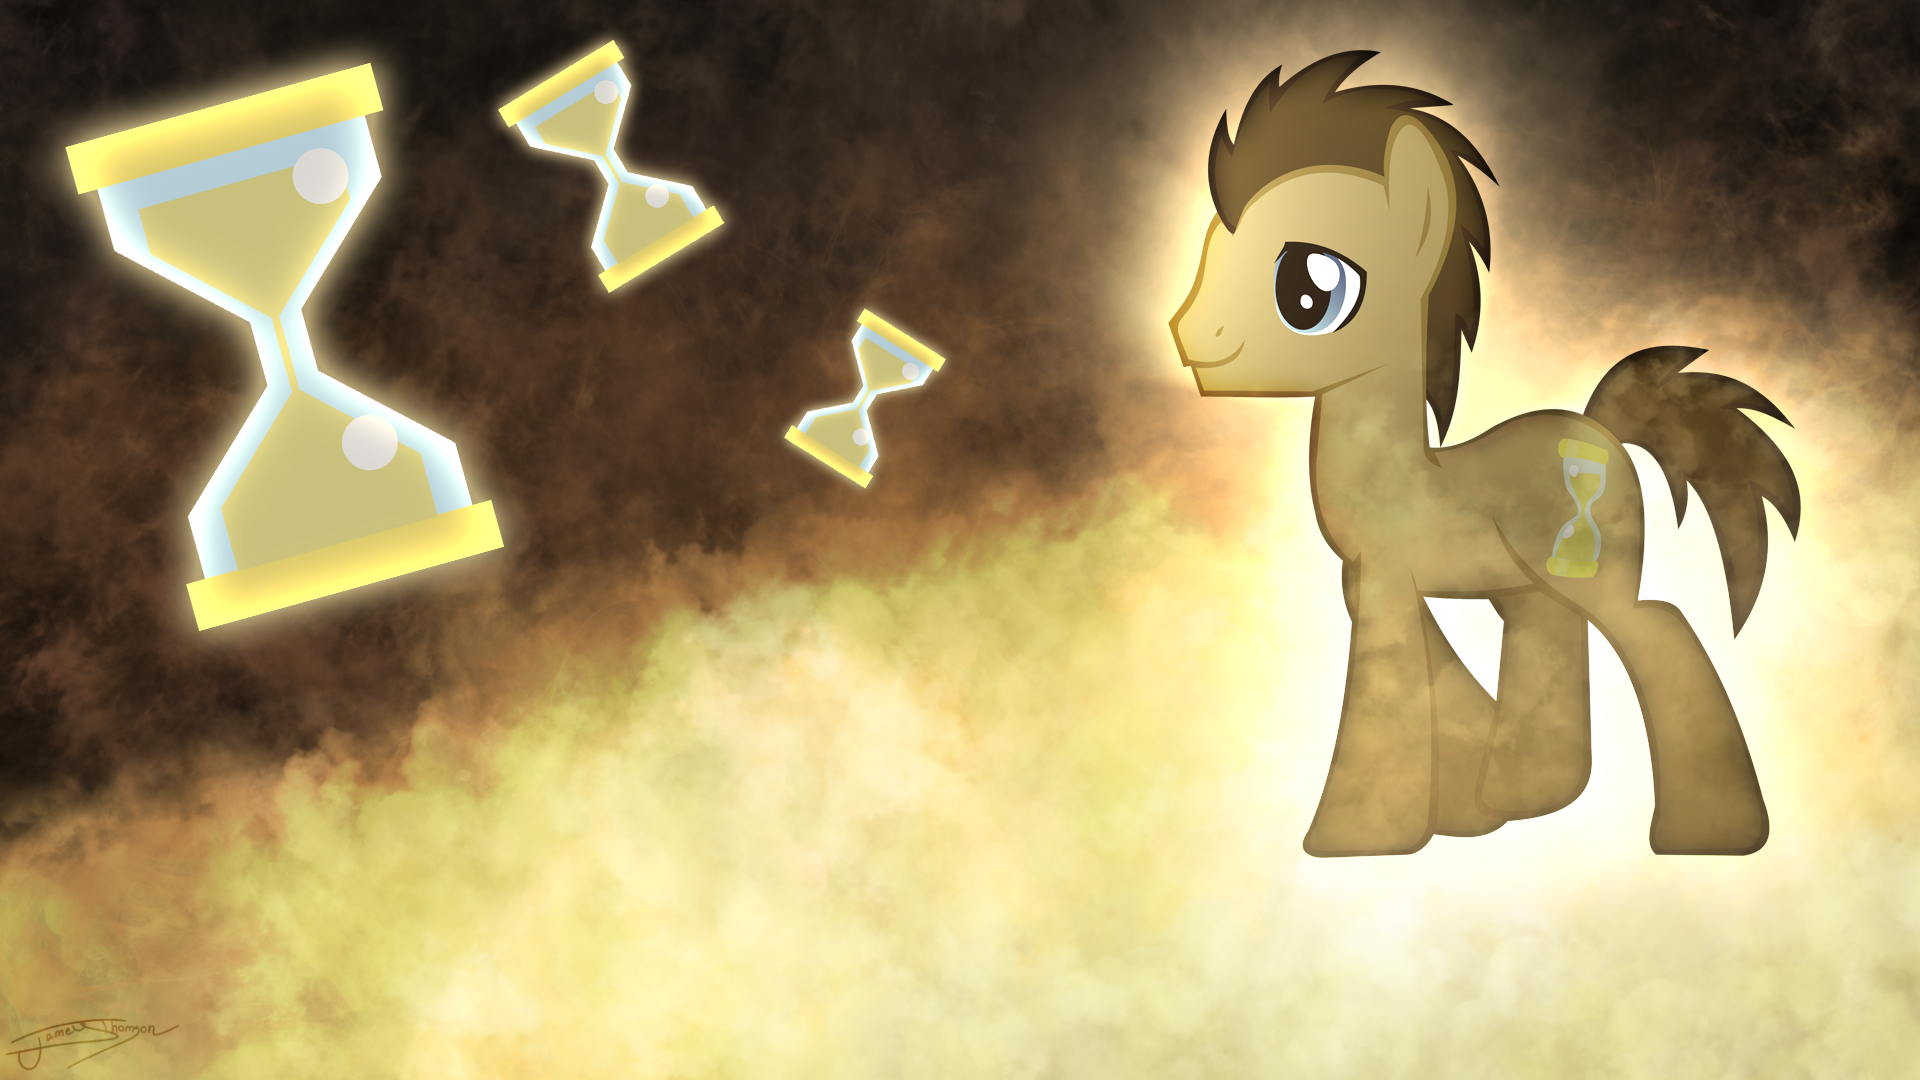 Dr. Whooves - Wibbly Wobbly Timey Wimey